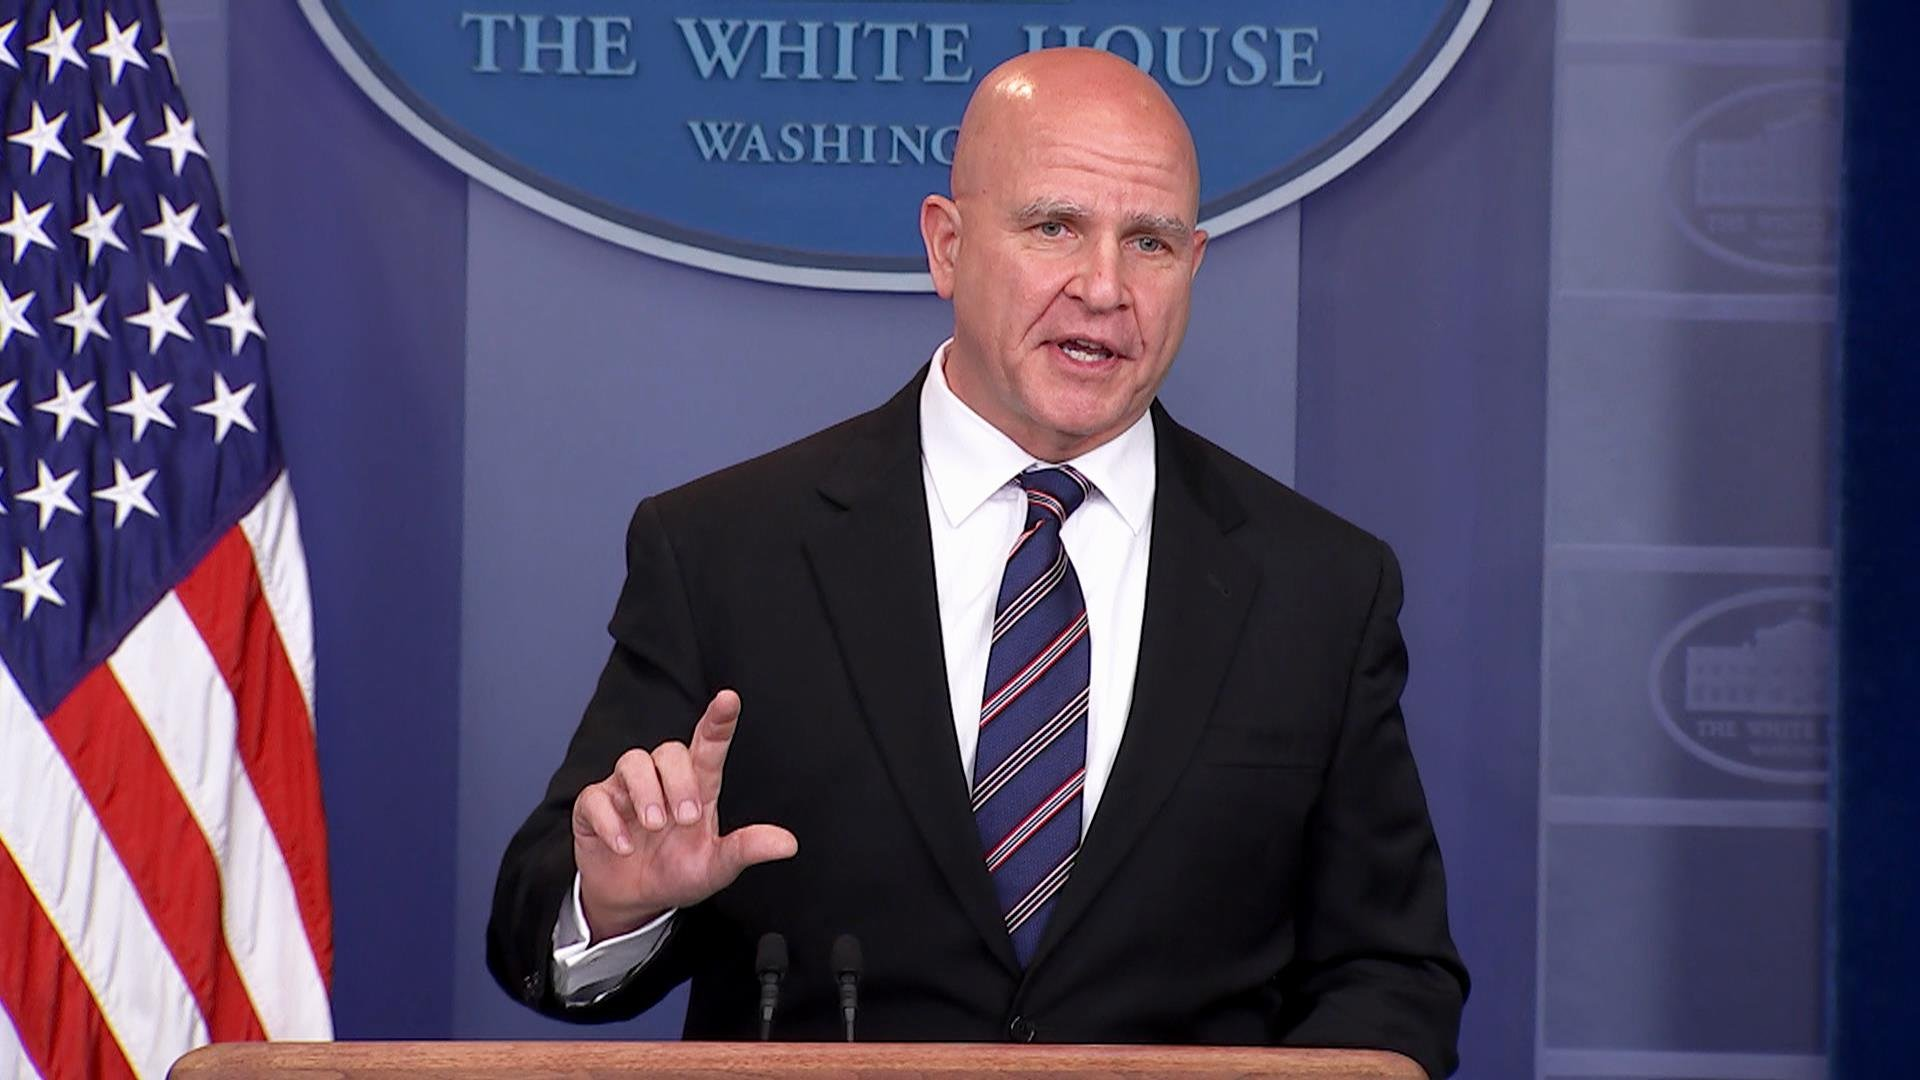 White House denies report claiming imminent replacement of HR McMaster